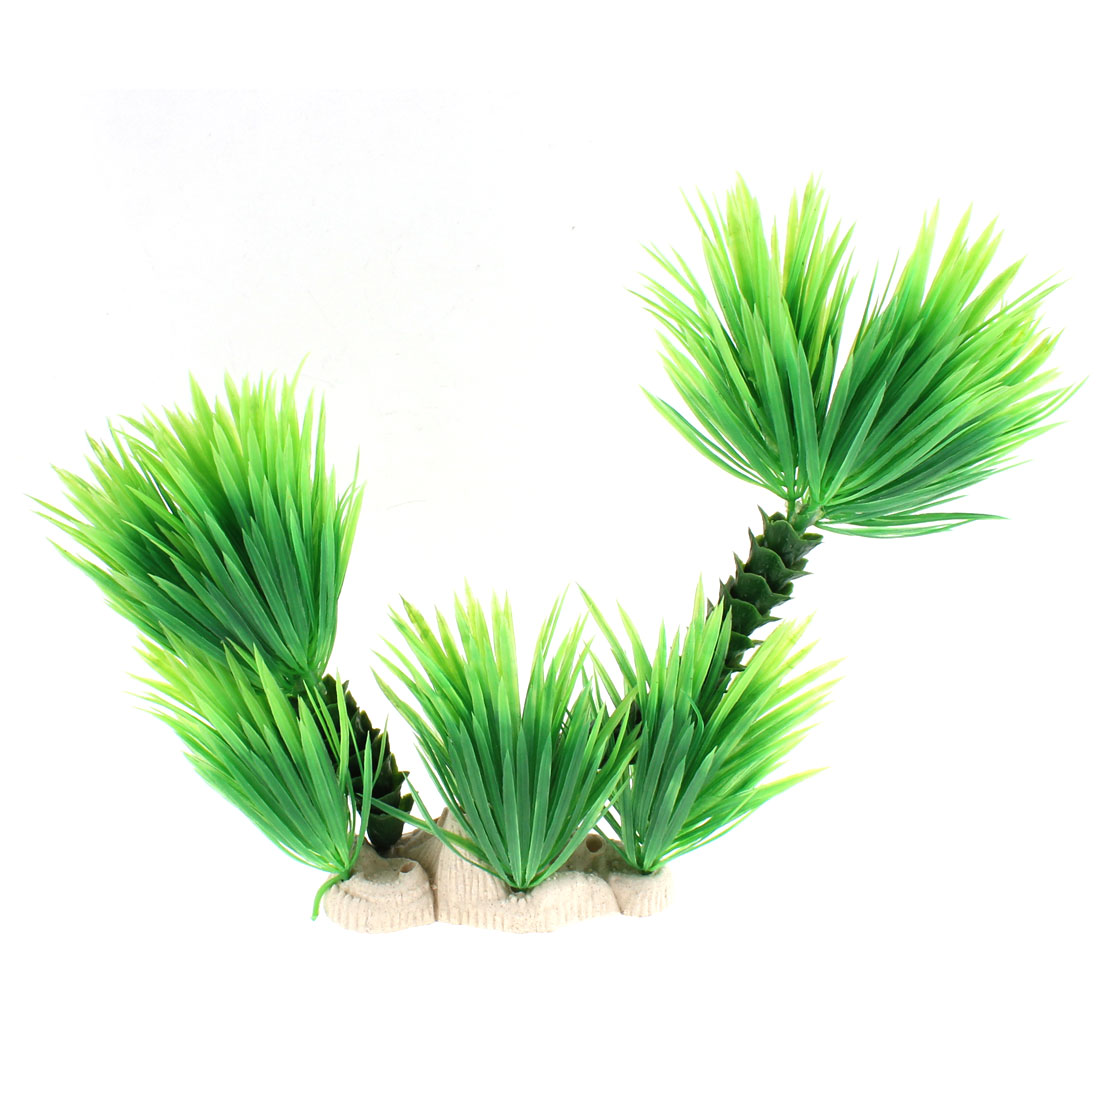 Aquarium Plastic Artificial Plant Underwater Grass Ornament 24 x 30cm